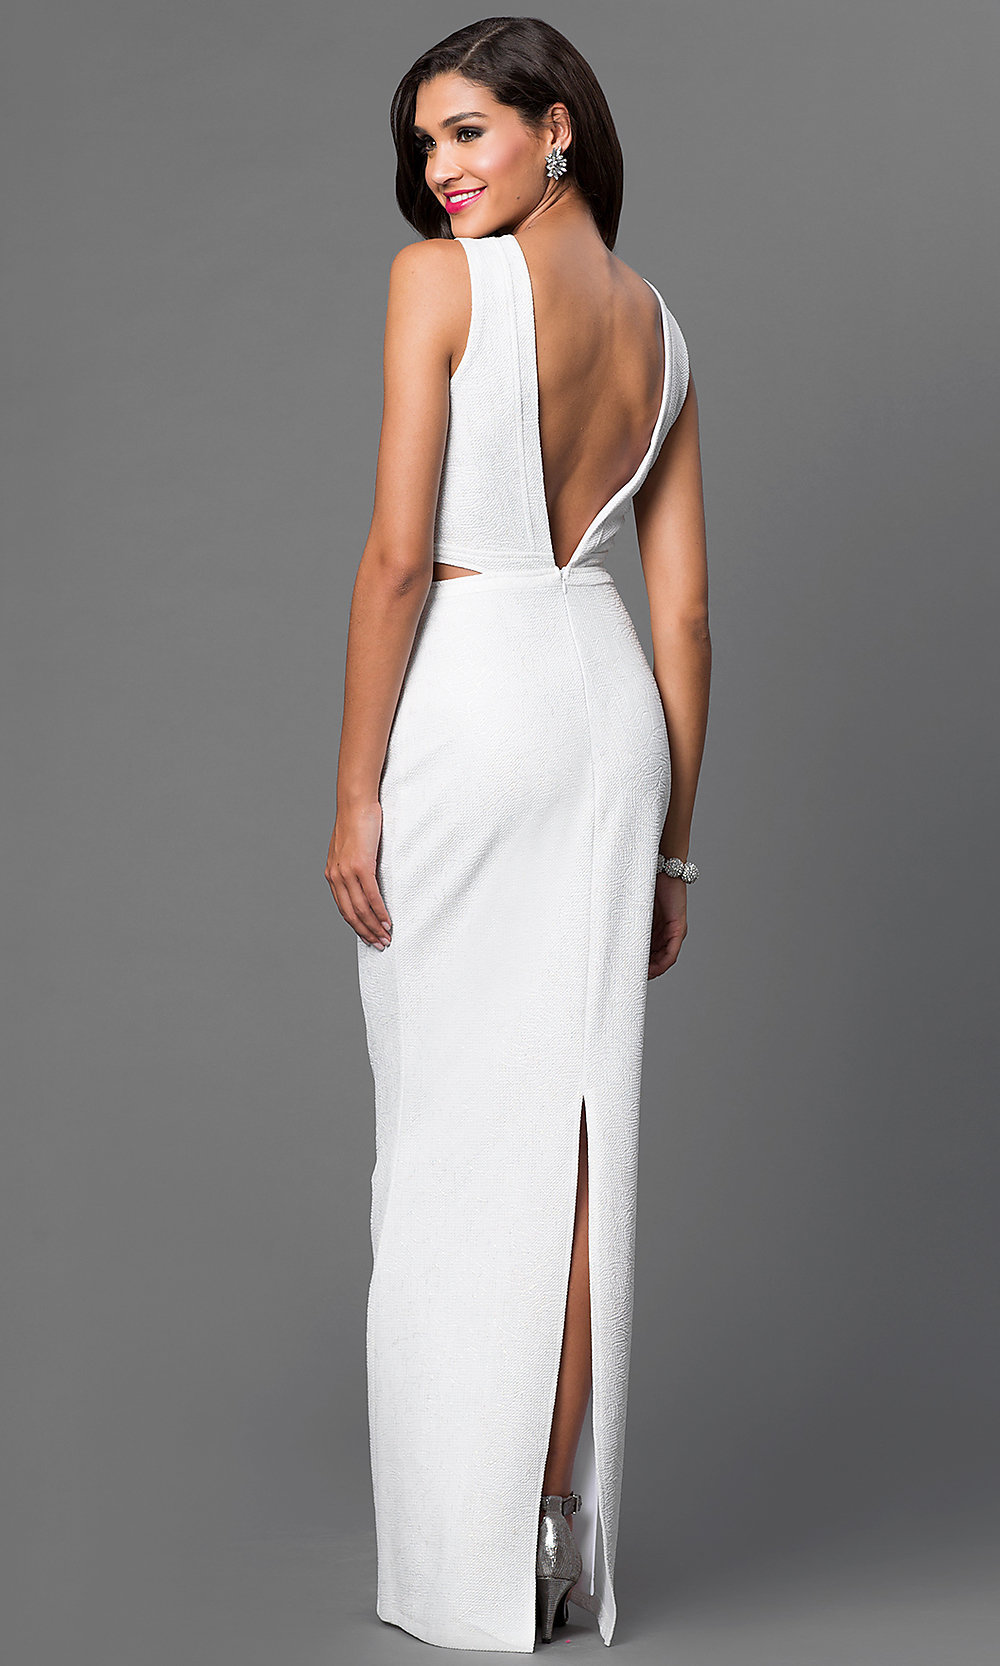 Long Off-White Open-Back Formal Dress - PromGirl